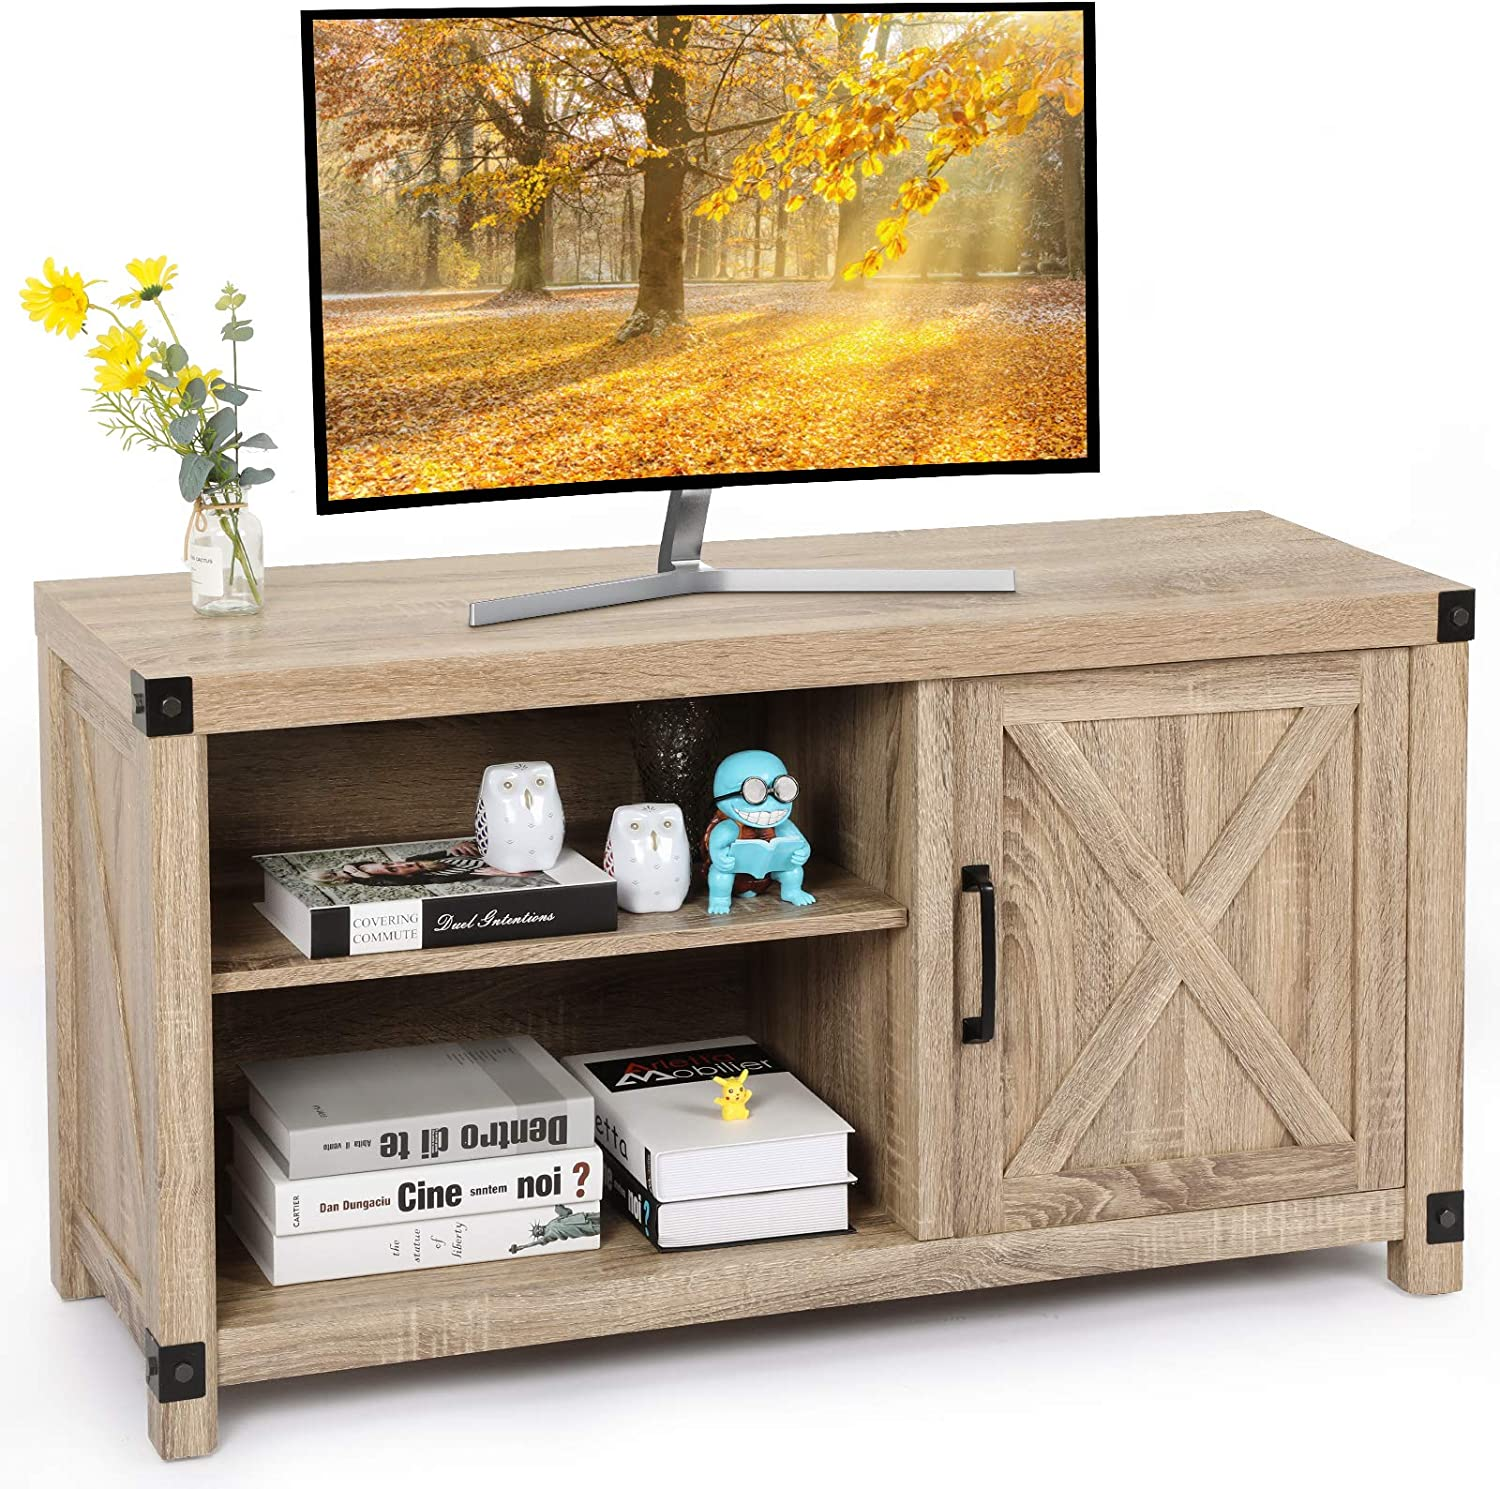 TV Console Cabinet for TVs up to 50 Inch W/Media Shelves, Farmhouse TV Stand Style Entertainment Center for Soundbar or Other Media, Barn Door TV Stand with Storage for Living Room Bedroom, APRTS03L